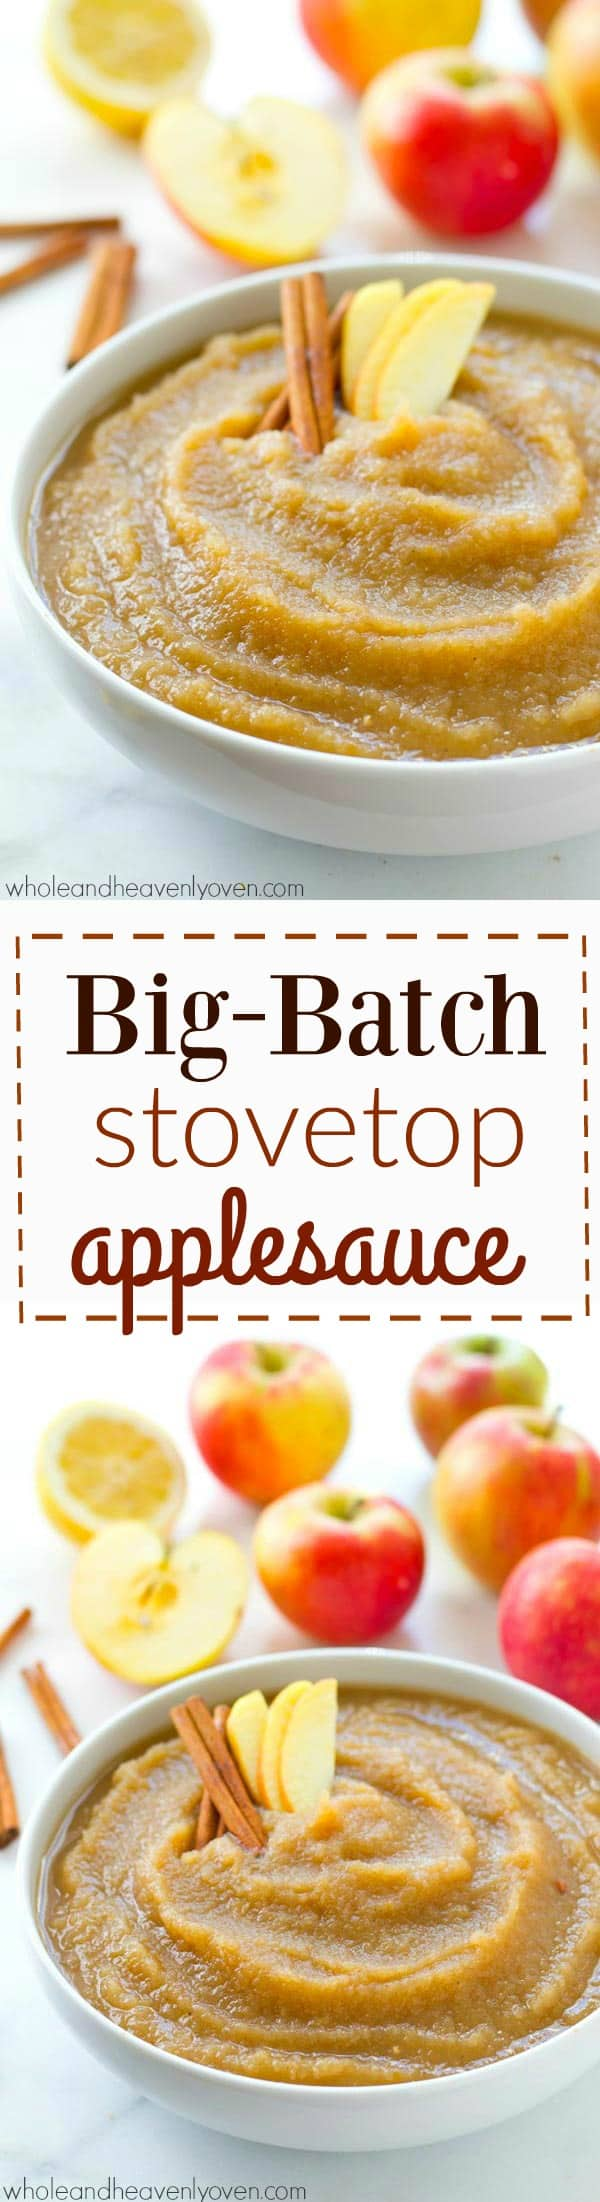 Lightly spiced and loaded with cozy fall apple flavors, this easy big batch-style stovetop applesauce cooks in minutes on the stove and is the perfect way to use up all those fall apples! @WholeHeavenly